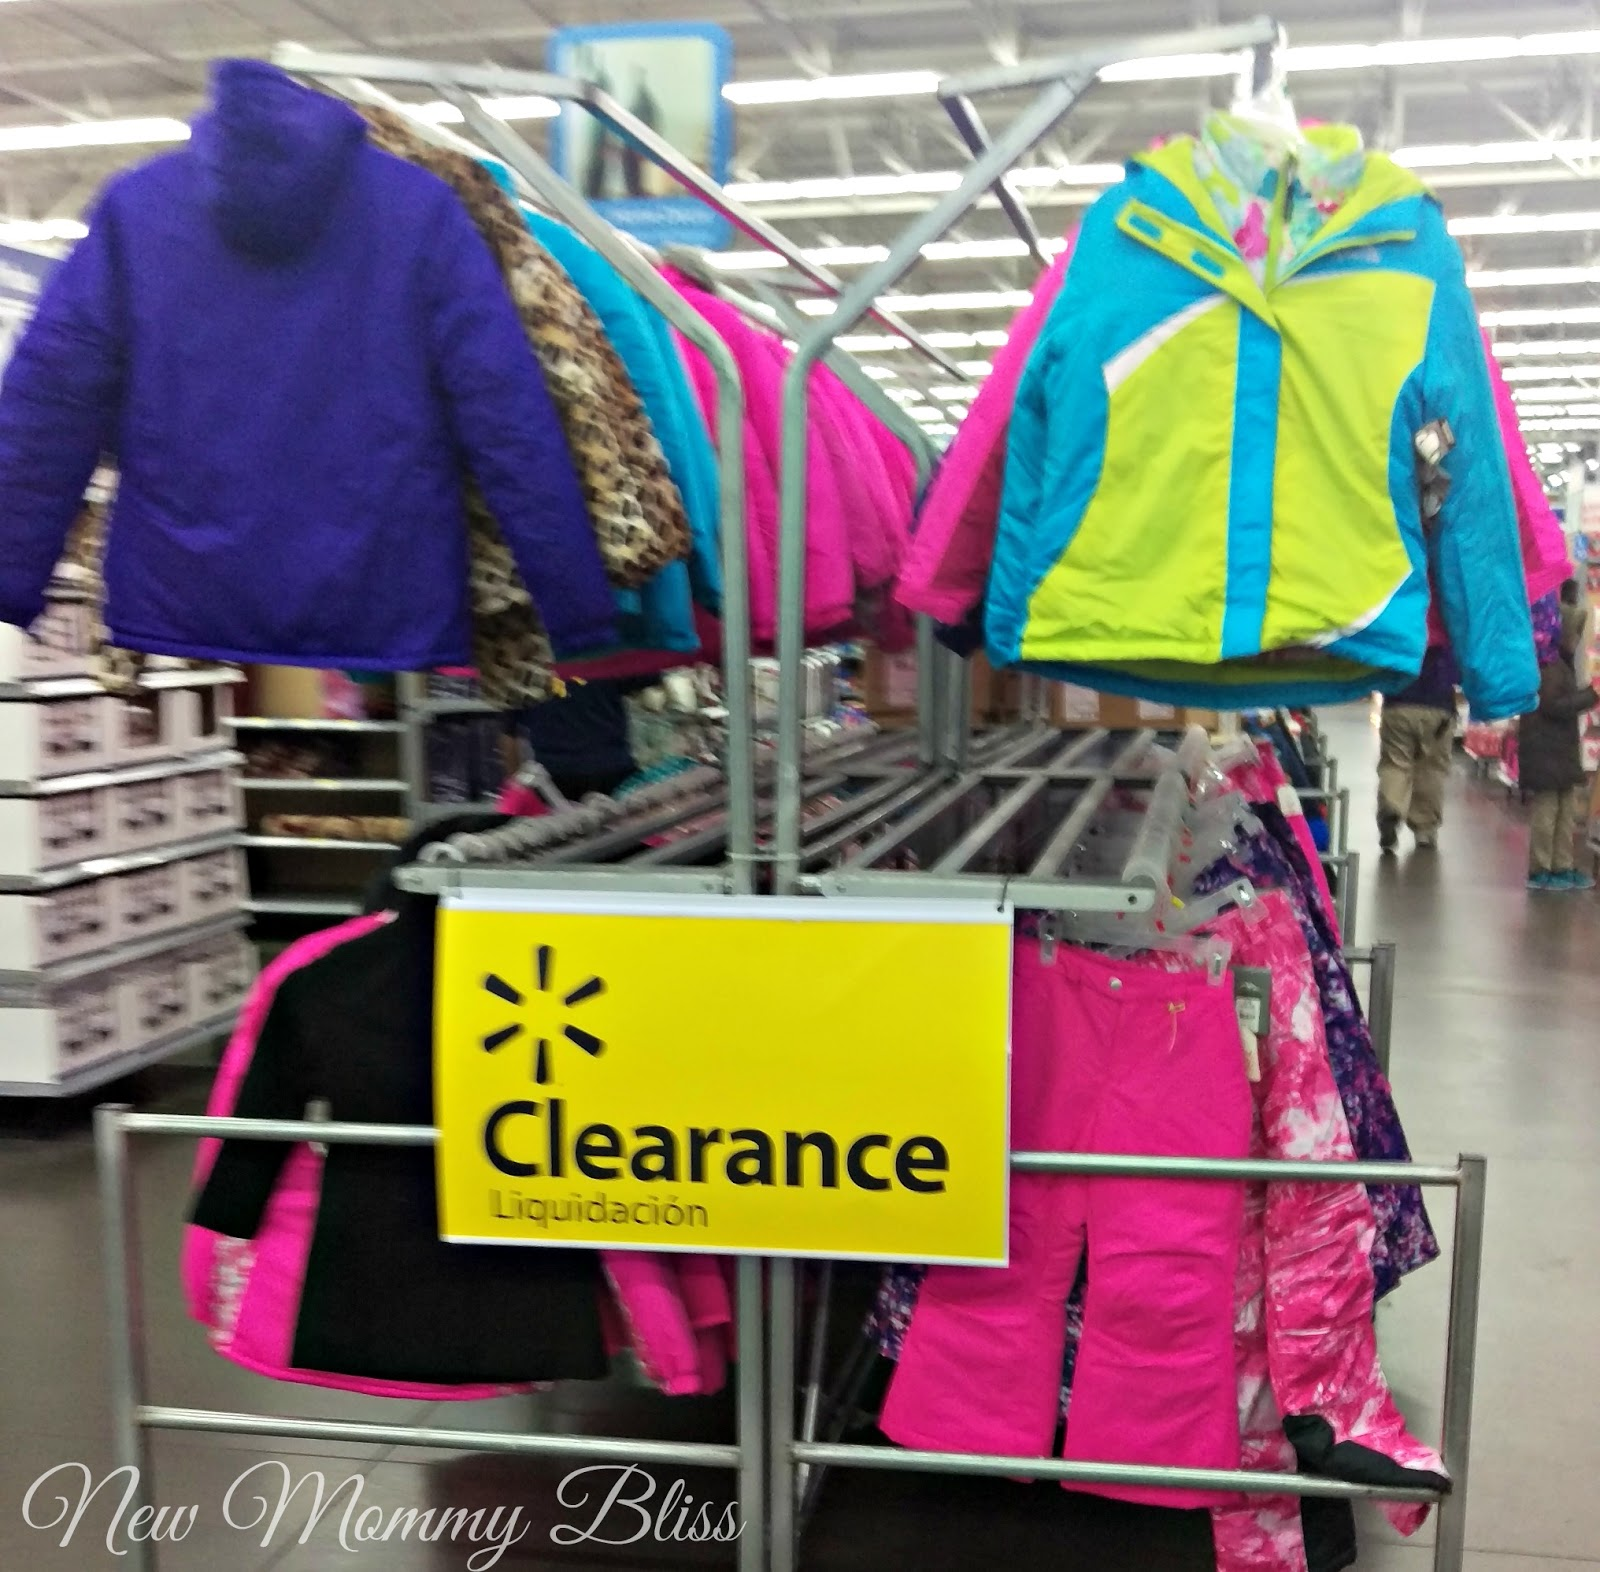 You Can Catch Me by the Clearance! 3 Tips to Shopping